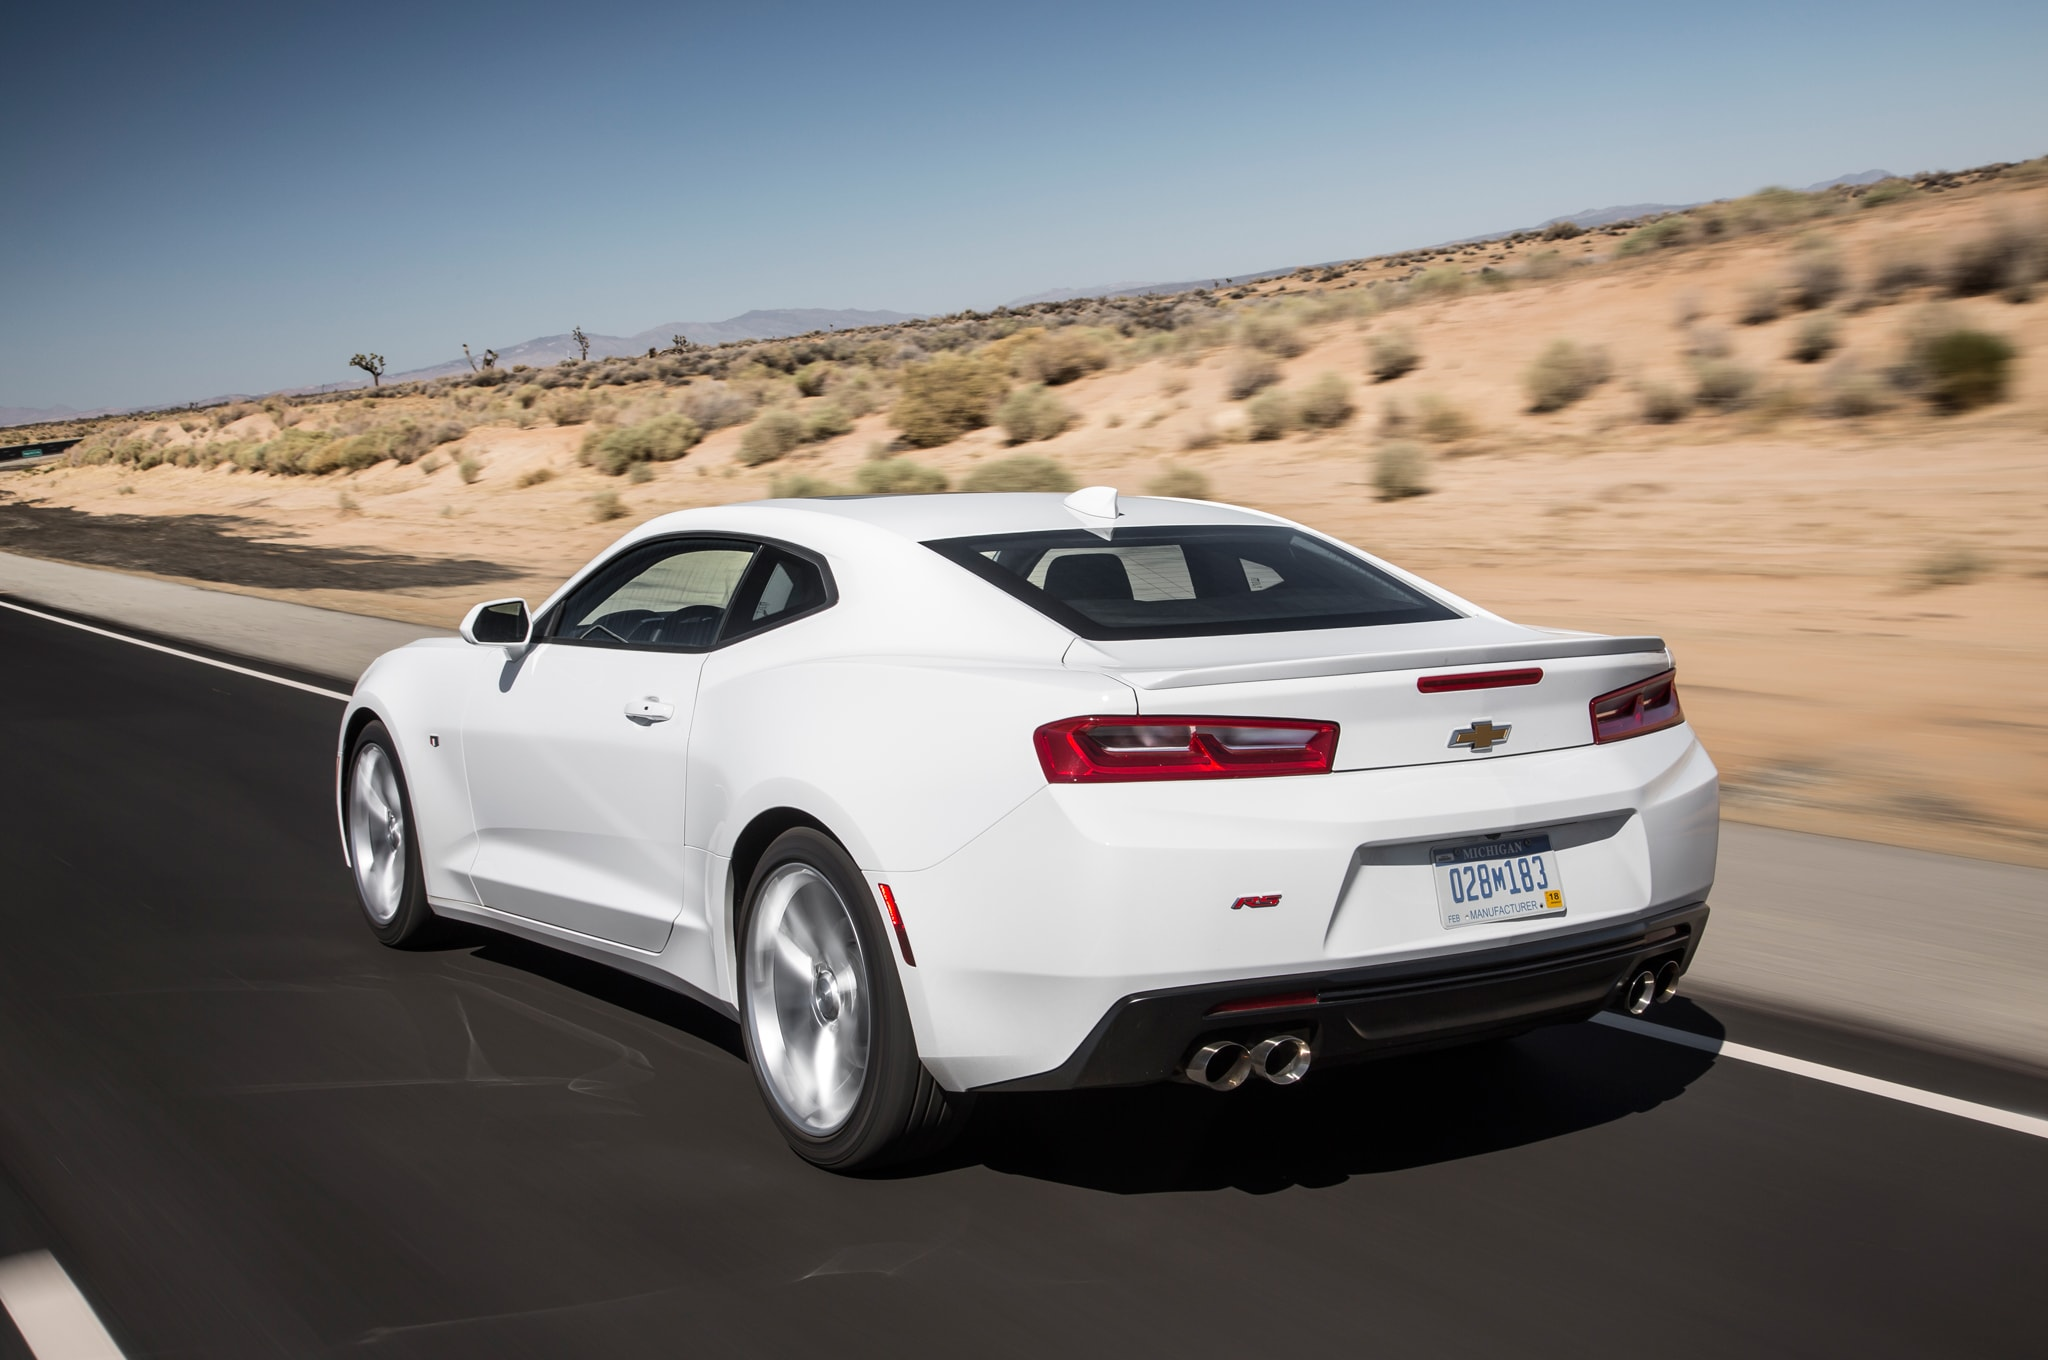 Chevrolet Camaro 6 widescreen wallpapers